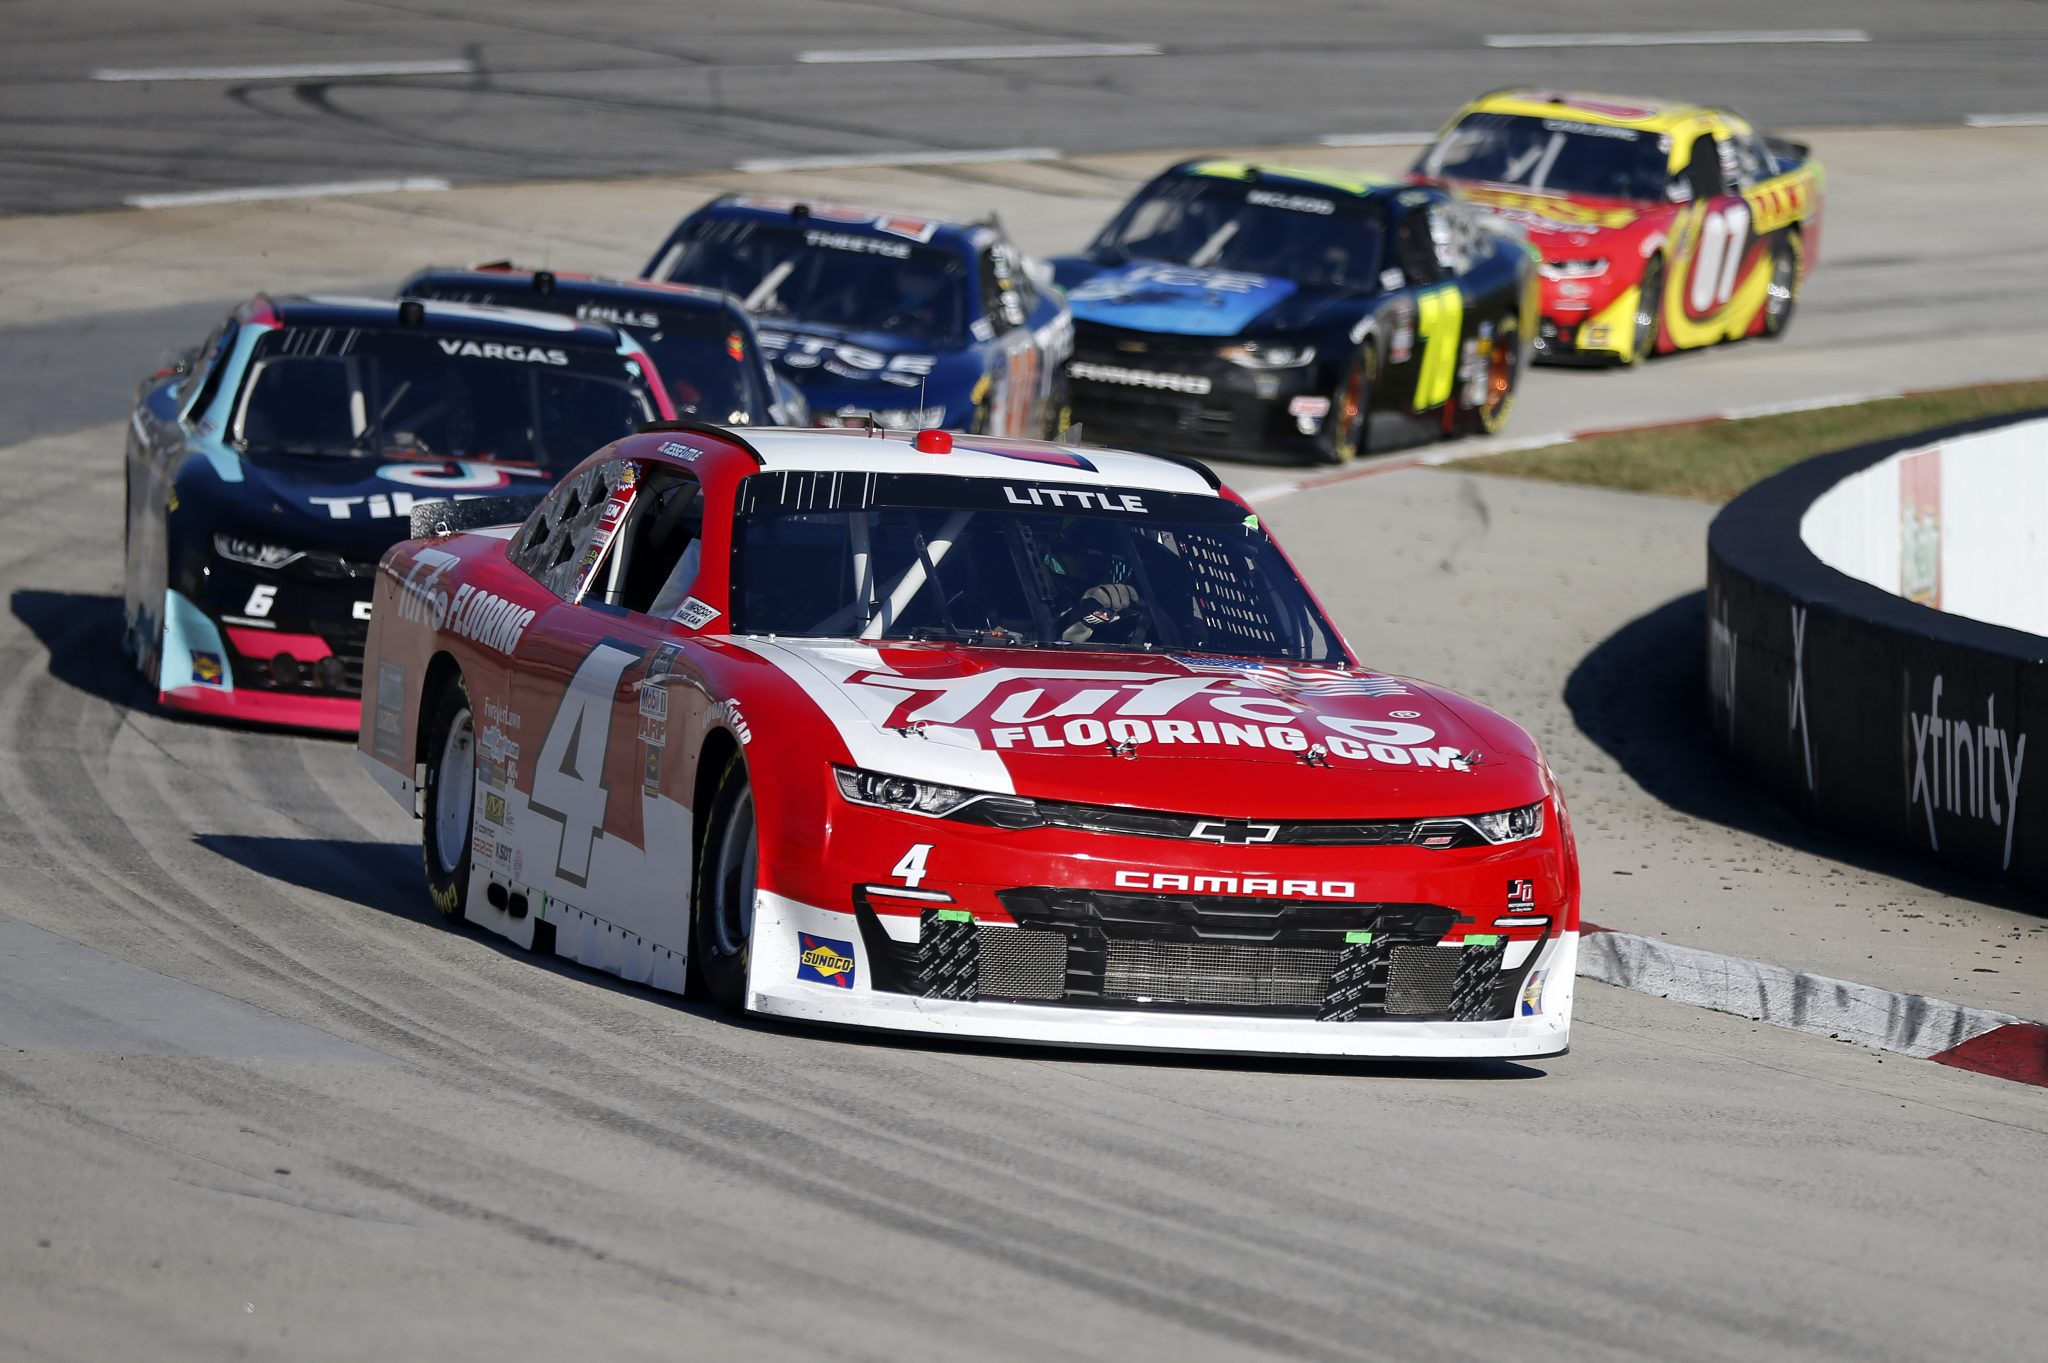 MARTINSVILLE, VIRGINIA - OCTOBER 31: Jesse Little, driver of the #4 Tufco Flooring Chevrolet, leads the field during the NASCAR Xfinity Series Draft Top 250 at Martinsville Speedway on October 31, 2020 in Martinsville, Virginia. (Photo by Brian Lawdermilk/Getty Images) | Getty Images